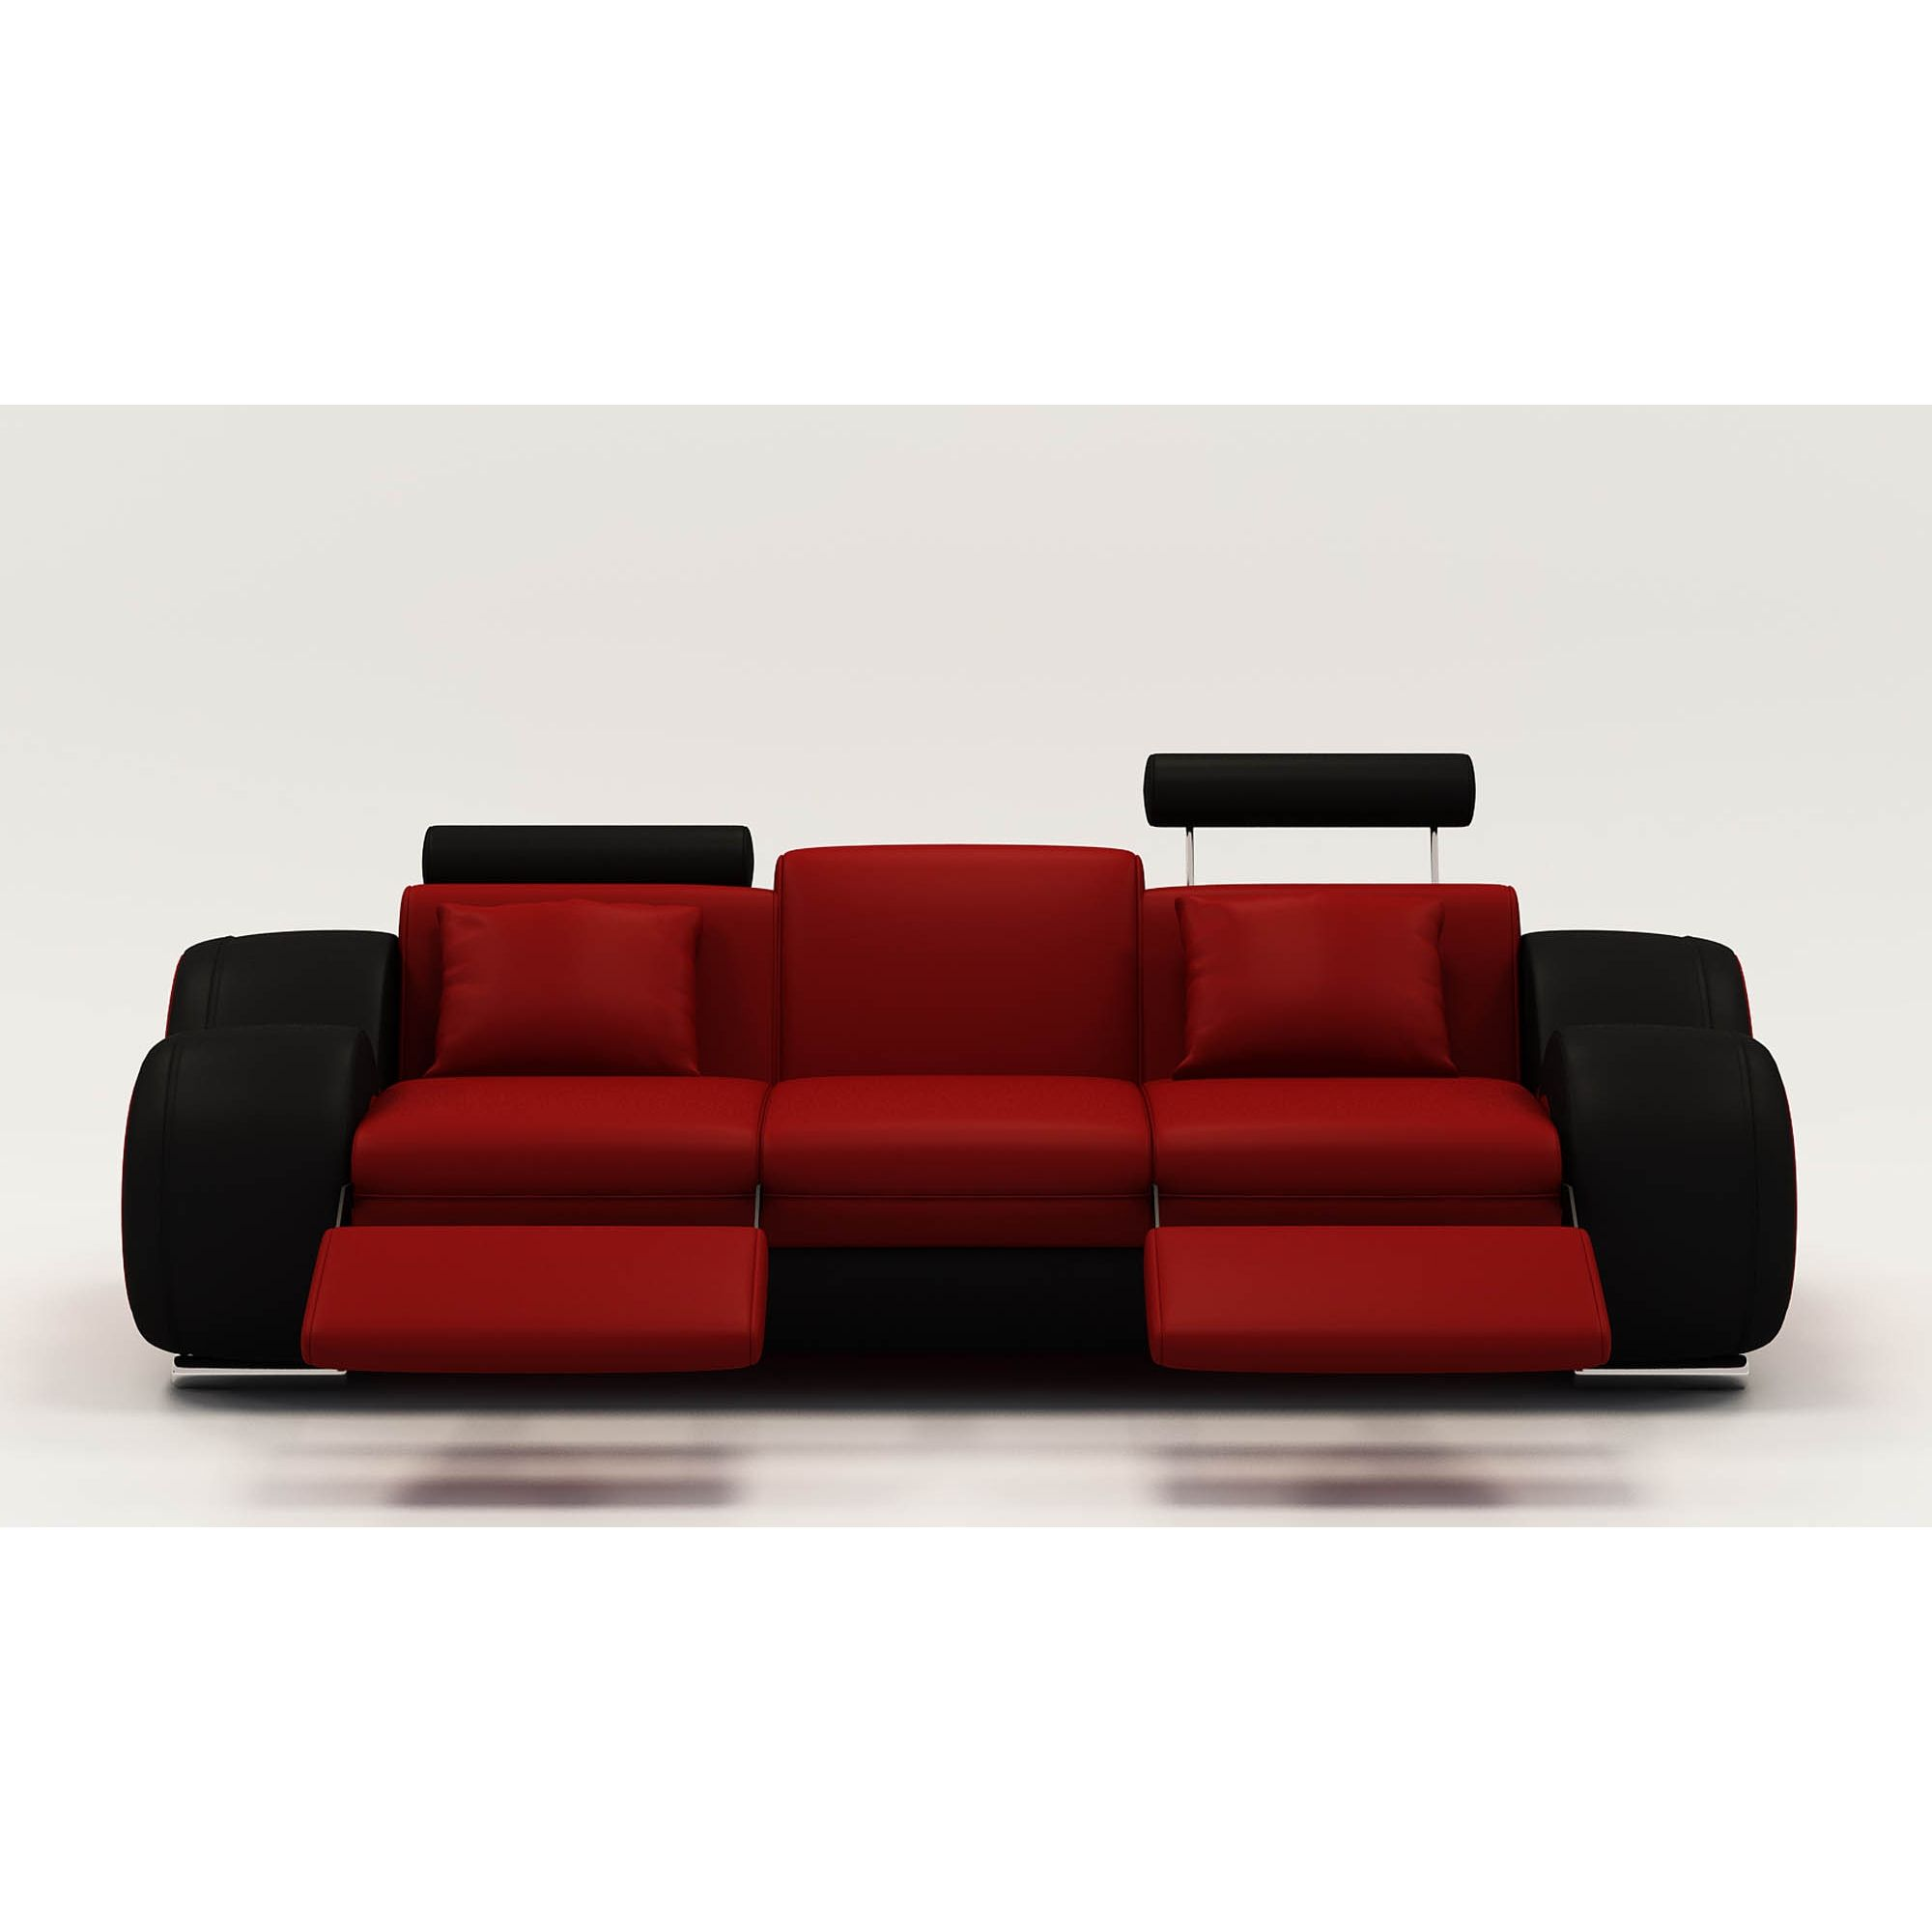 Deco in paris 7 canape design 3 places cuir rouge et noir tetieres relax os - Canape rouge 3 places ...